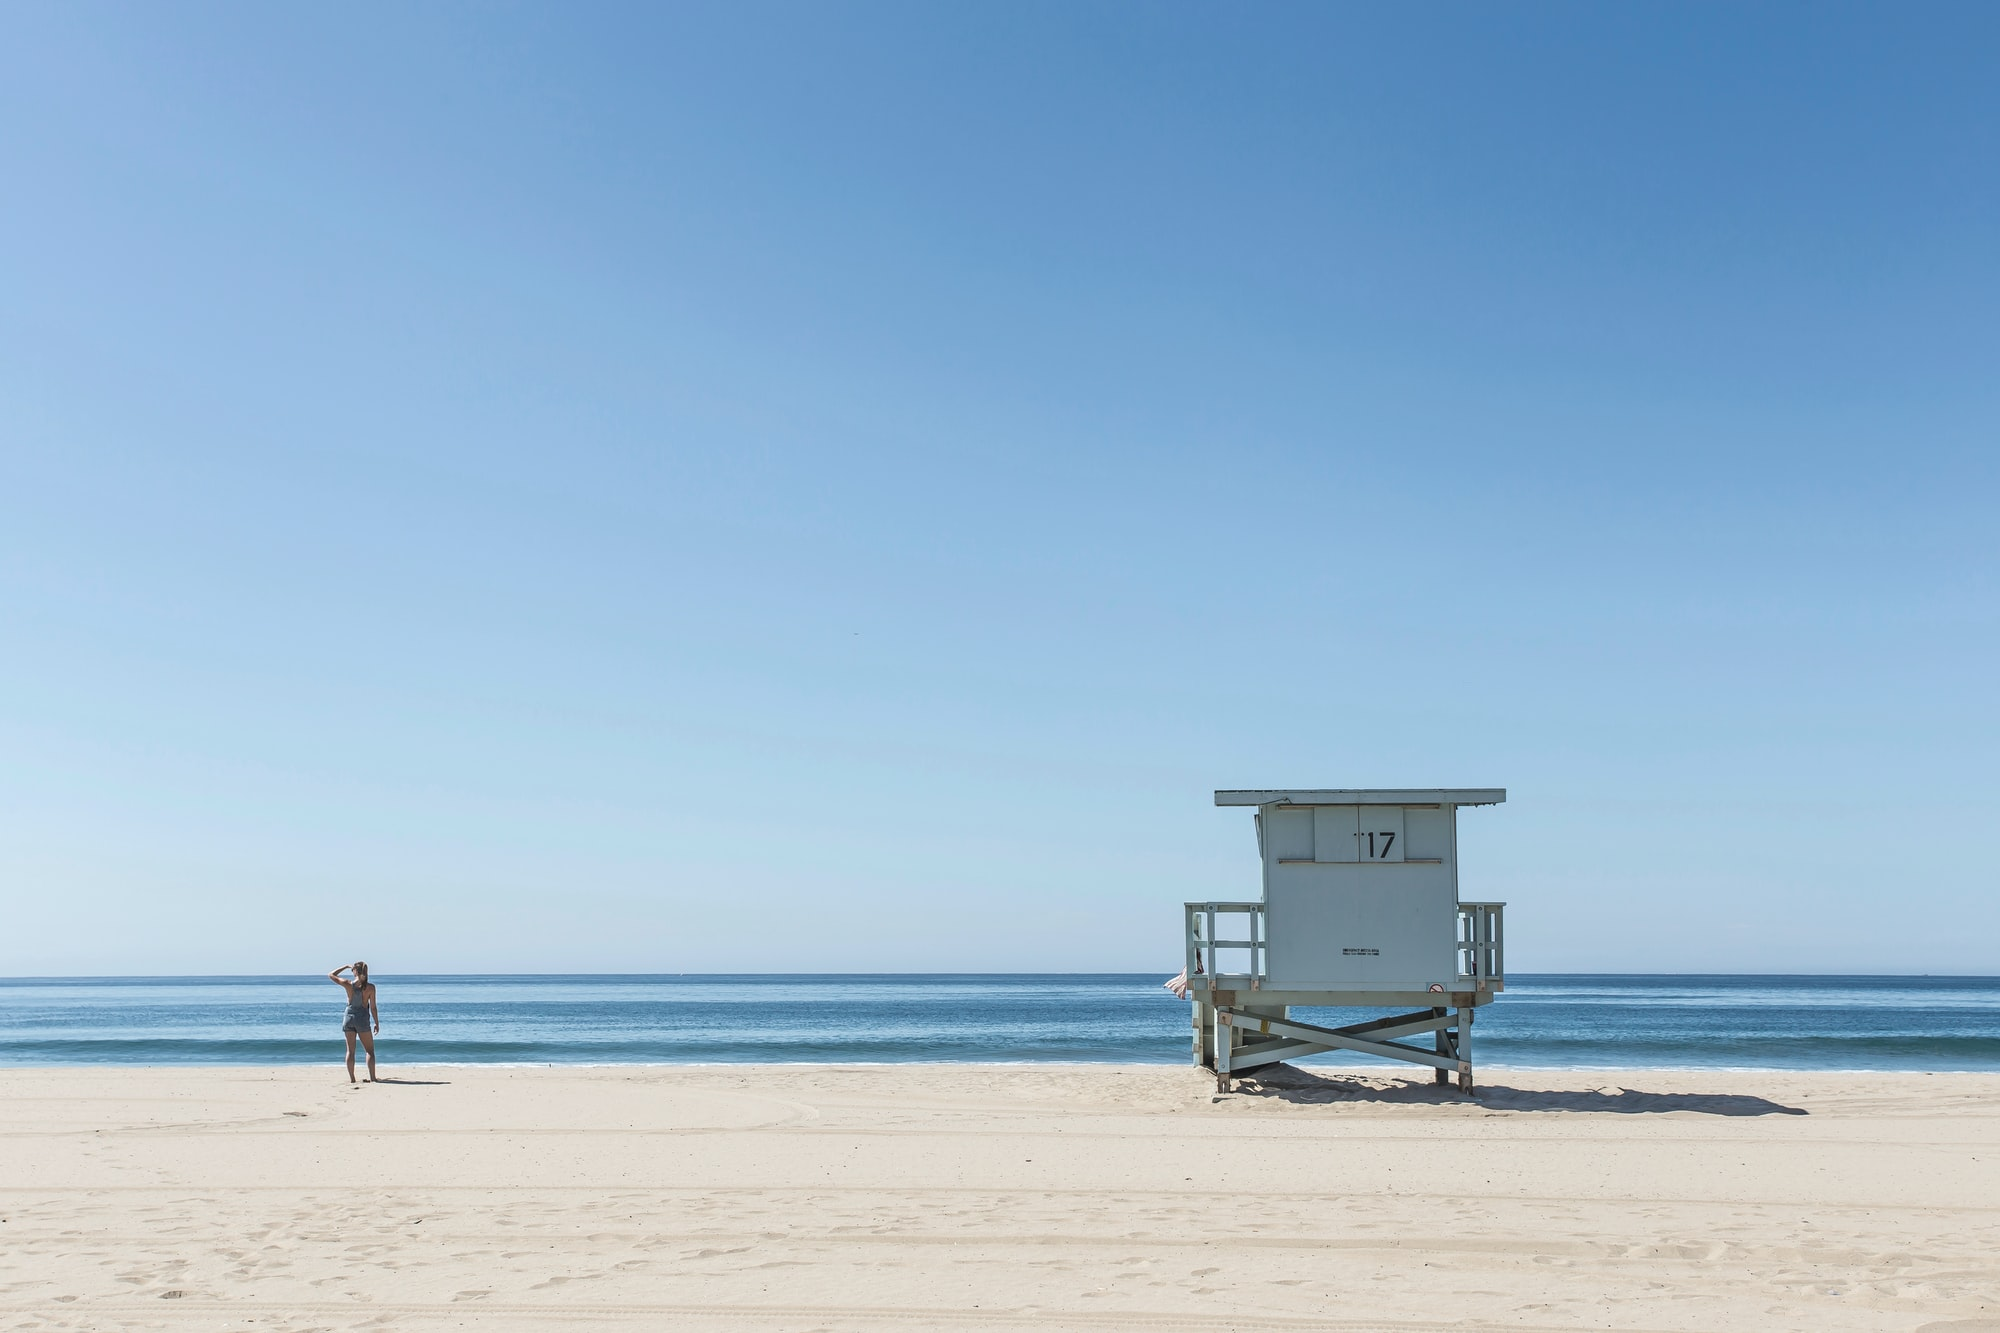 Beach at Los Angeles, California, United States